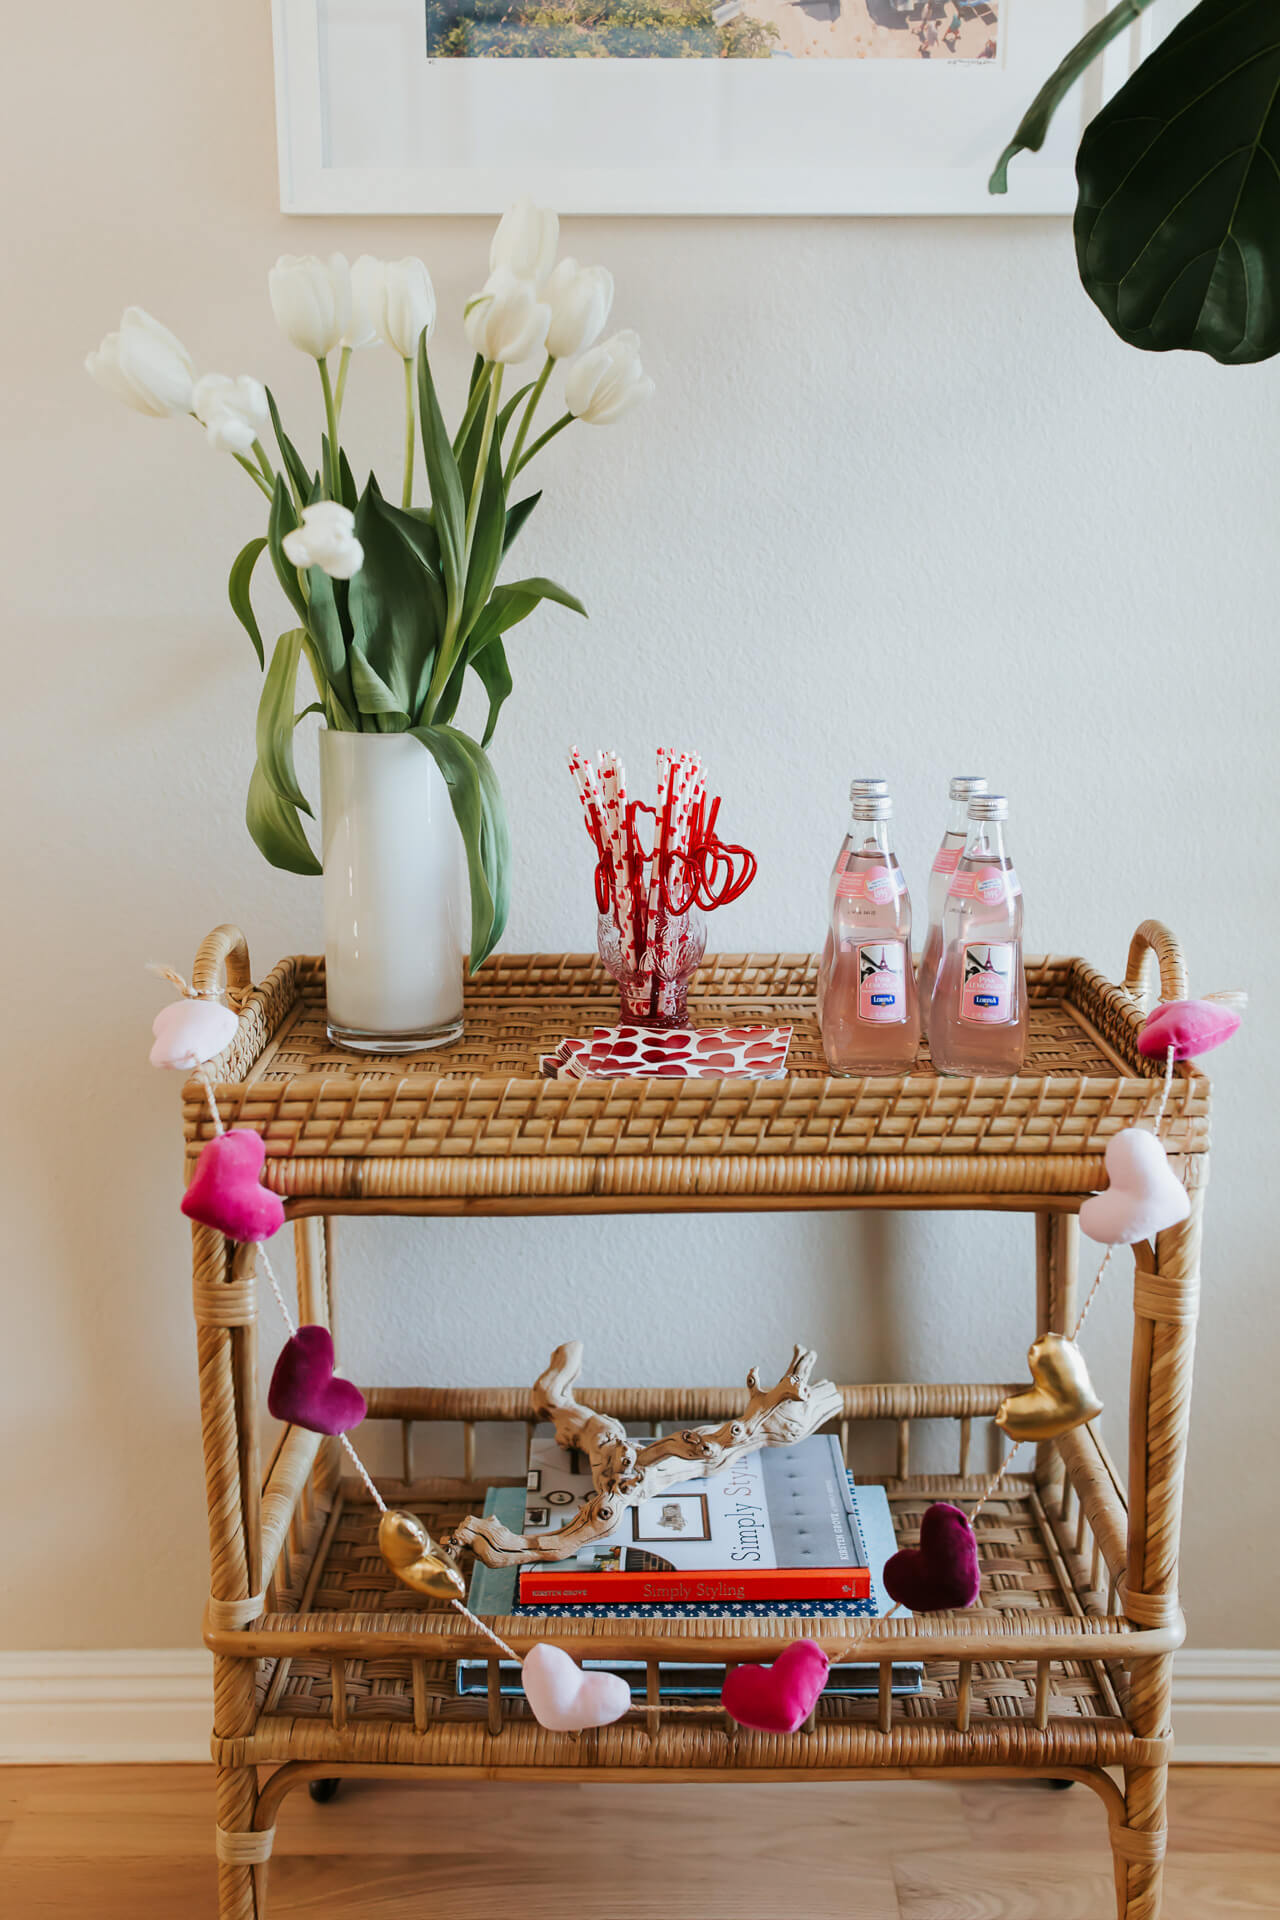 cute ways to decorate your bar cart for Valentine's Day